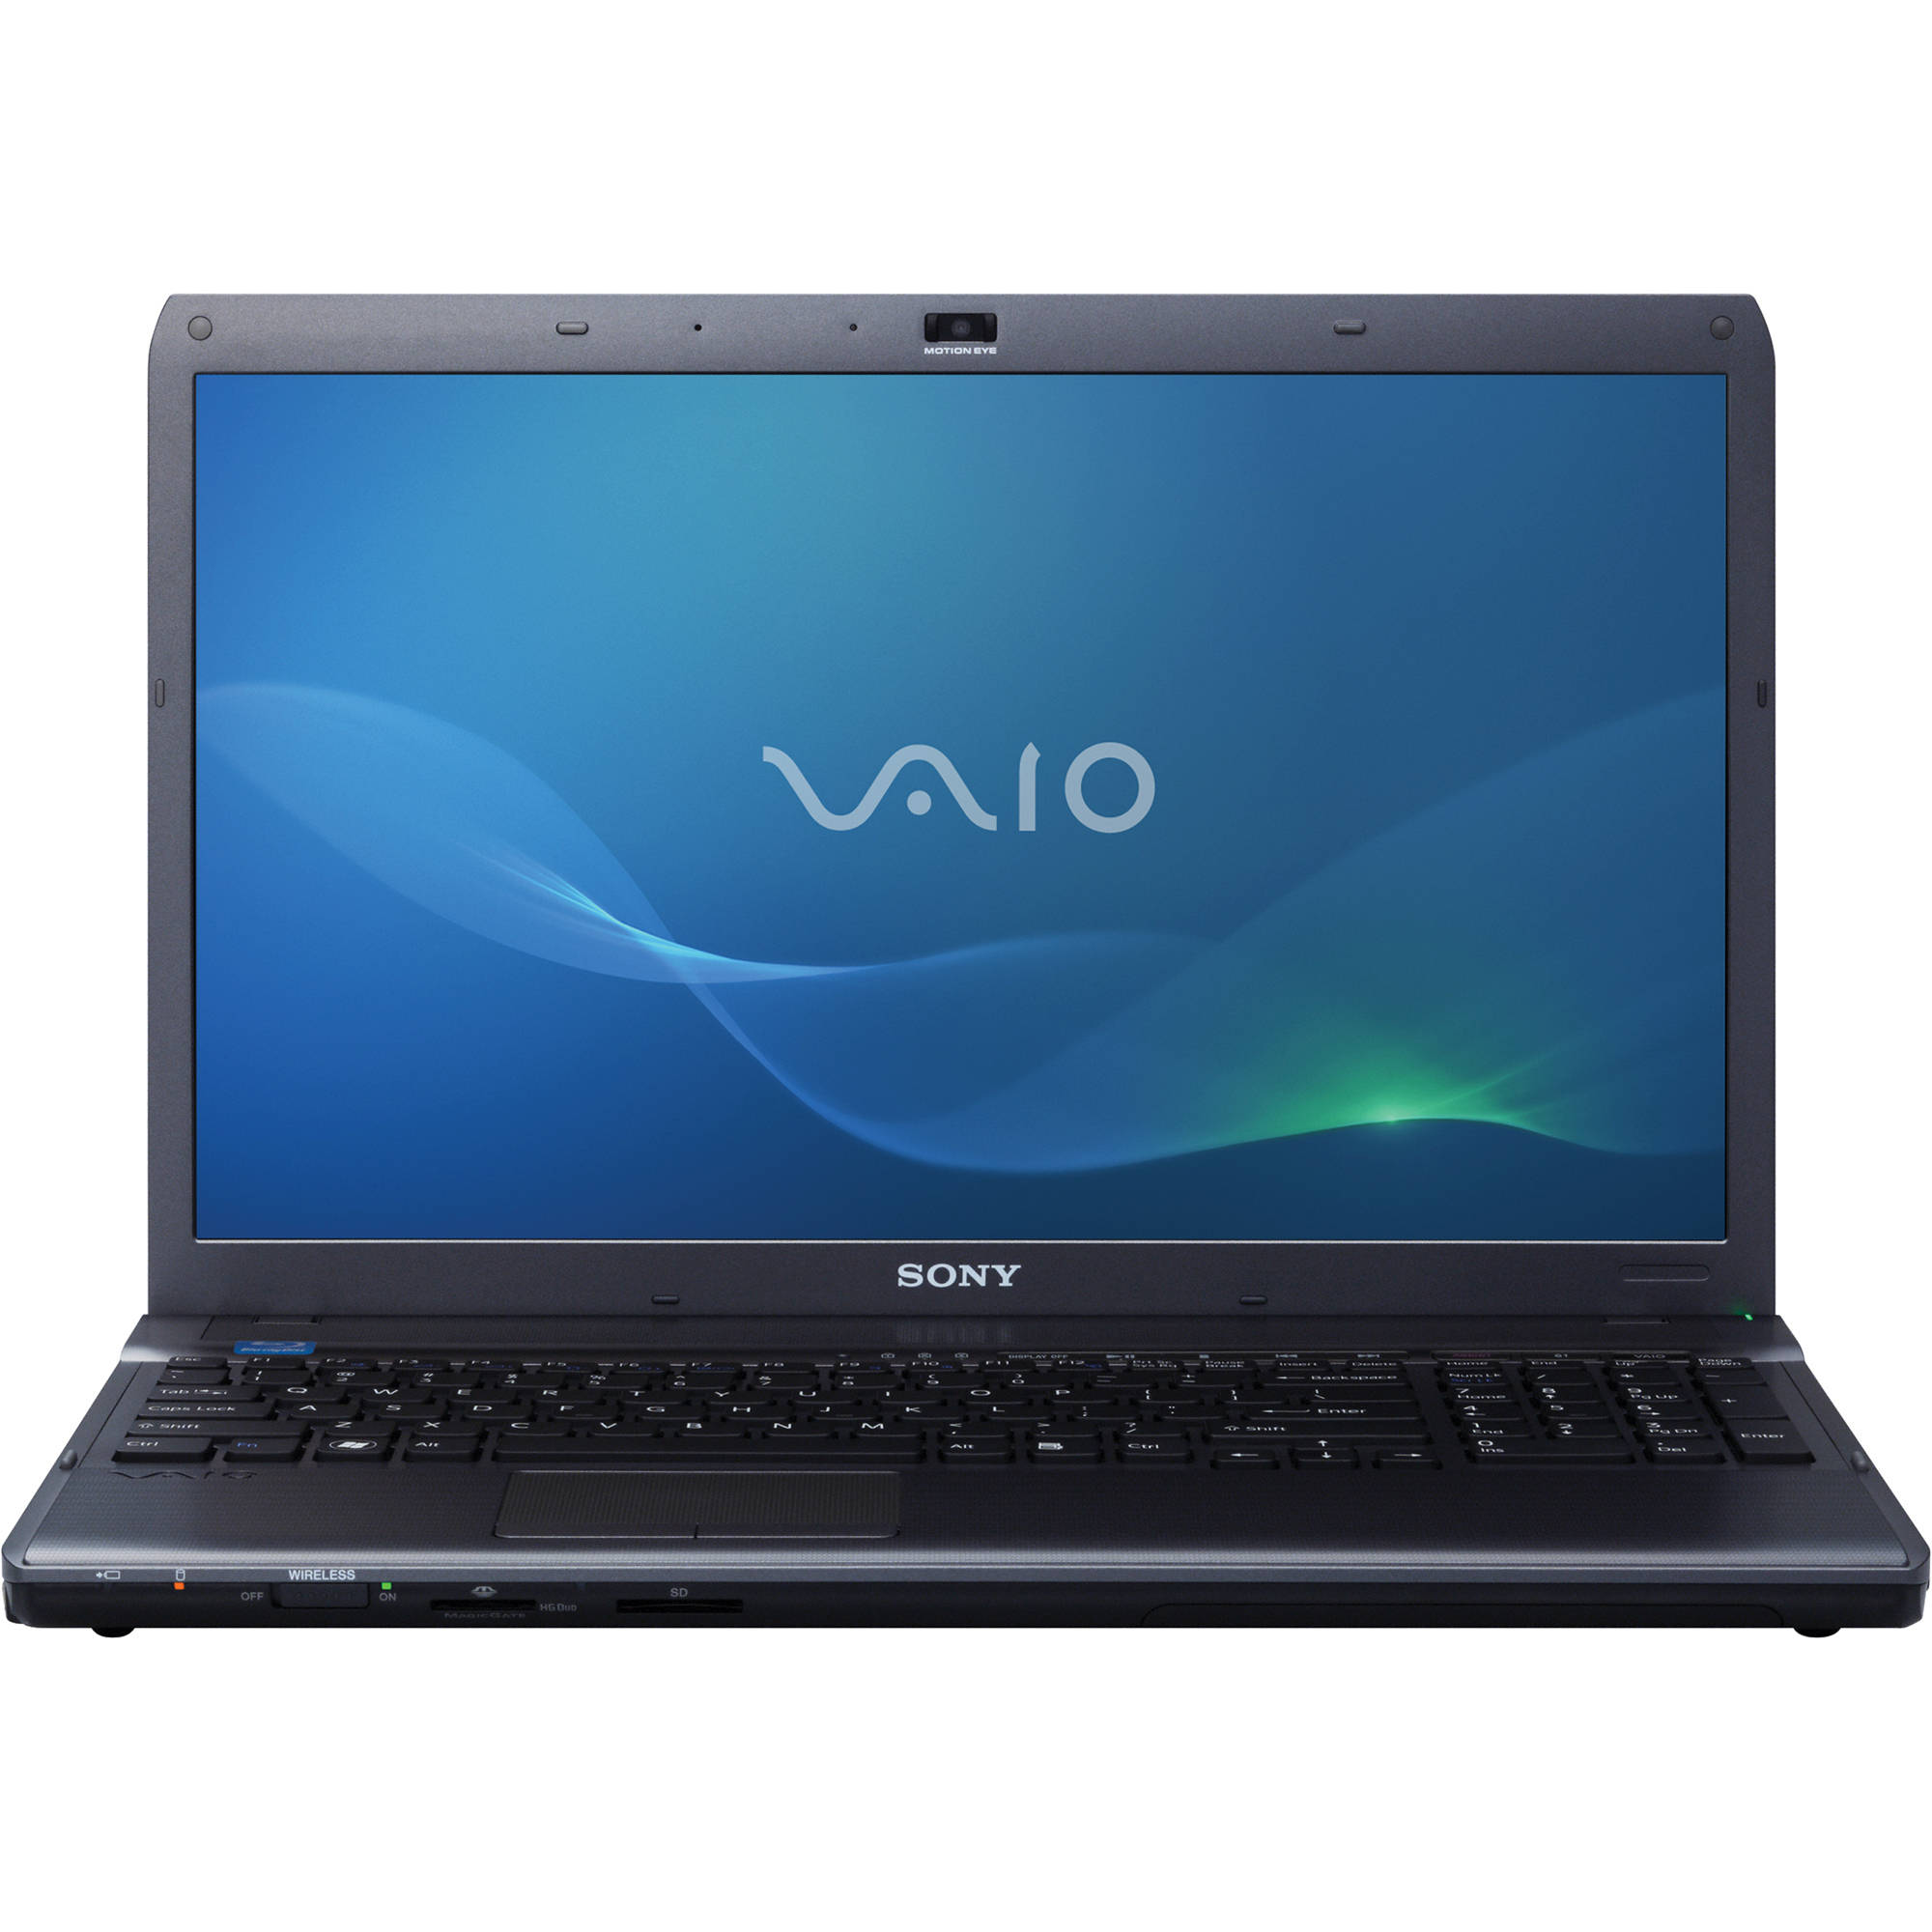 SONY VAIO VPCF113FX TOUCHPAD SETTINGS WINDOWS 10 DRIVERS DOWNLOAD